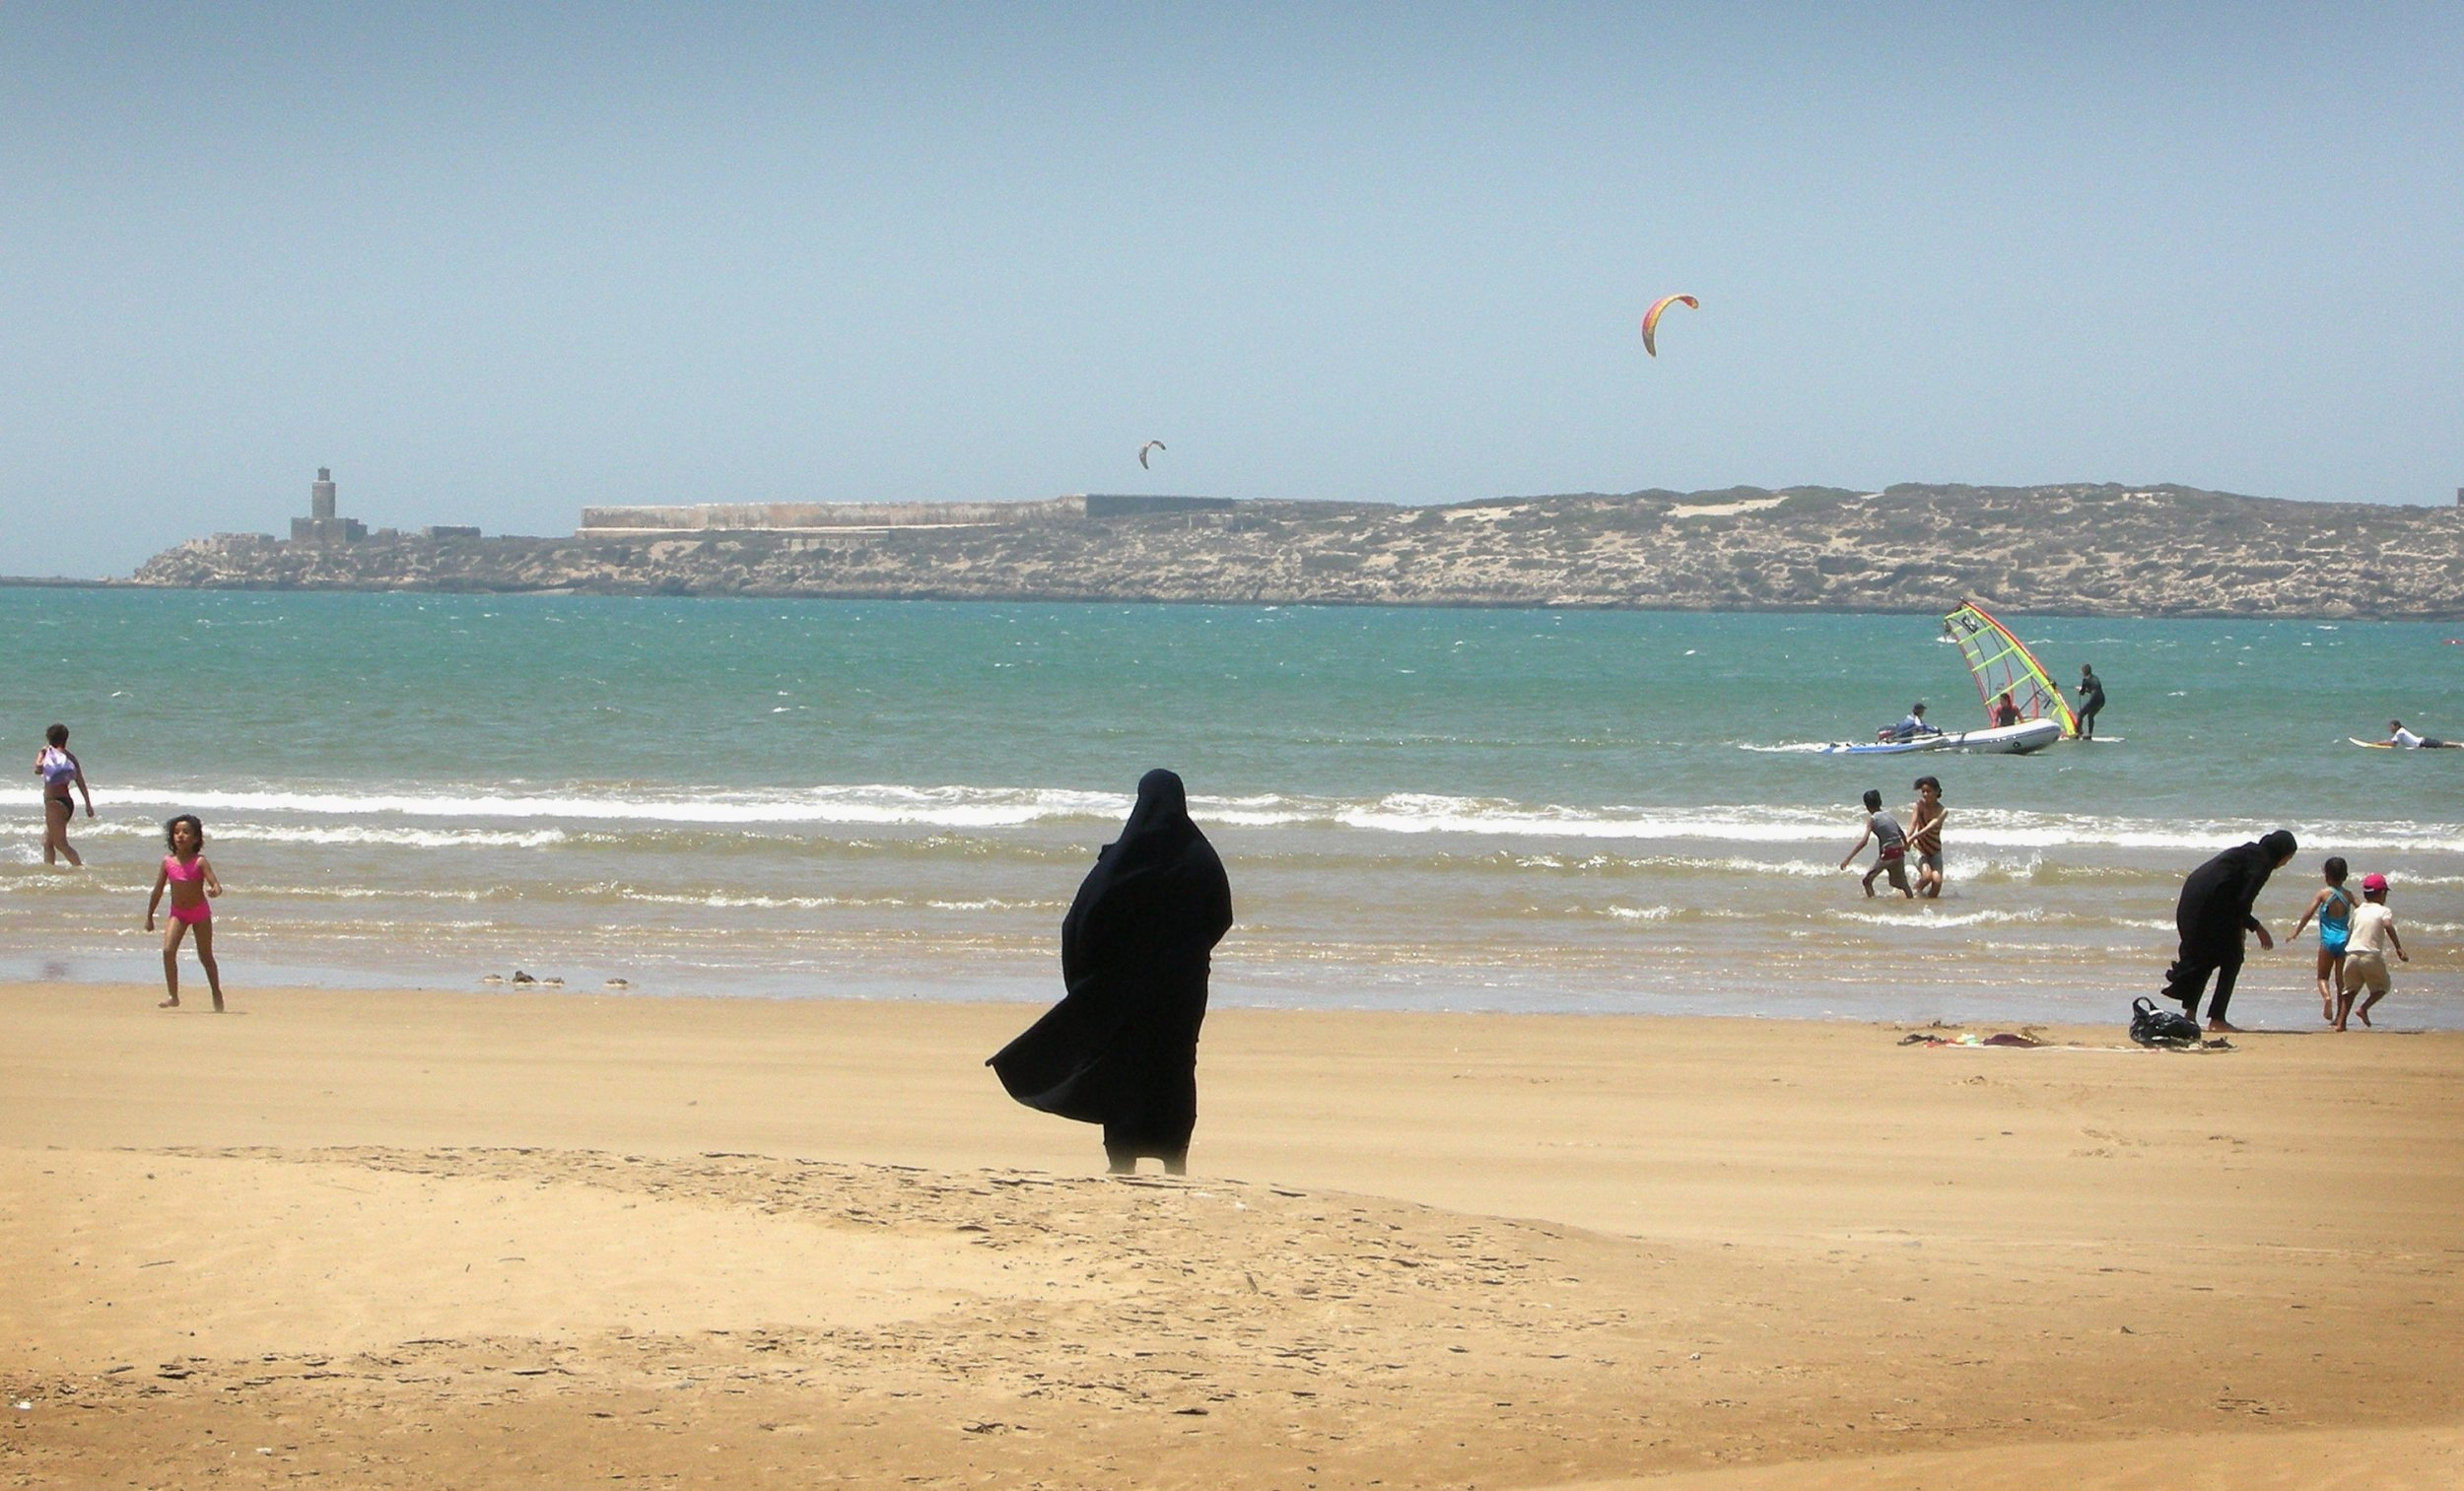 Morocco 'Bans Production and Sale of the Burqa' Over Security Concerns